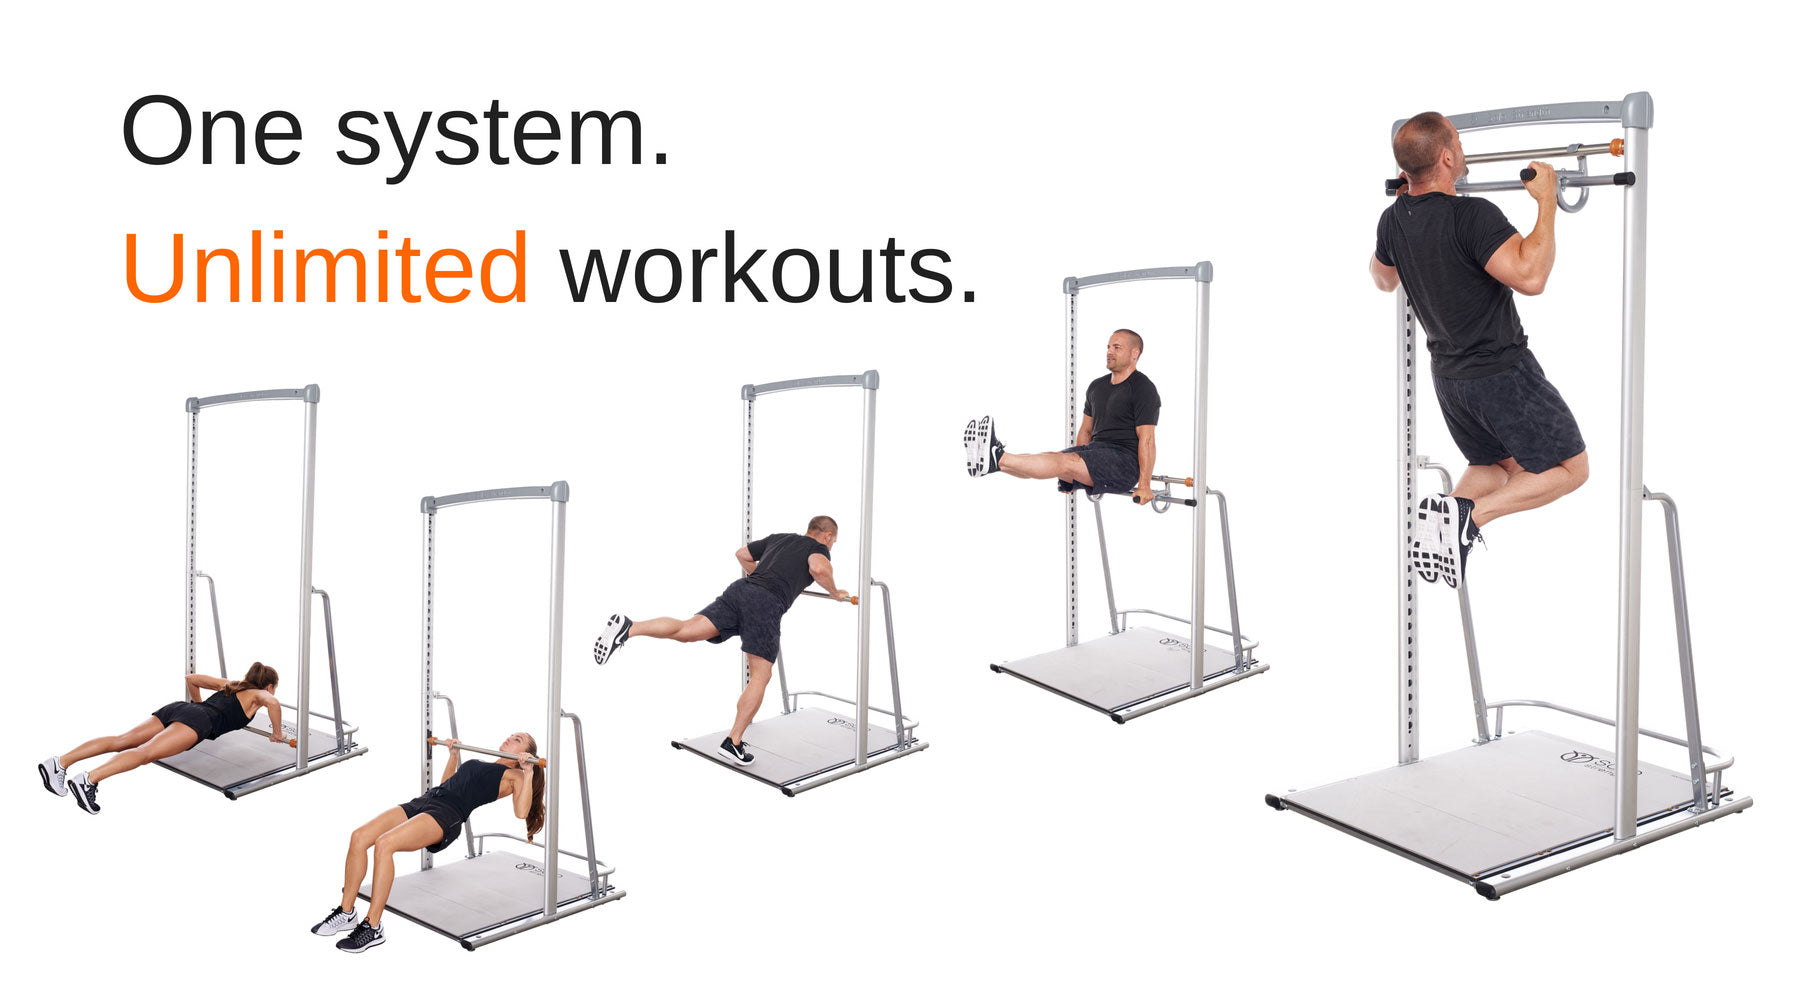 functional training bodyweight exercise equipment